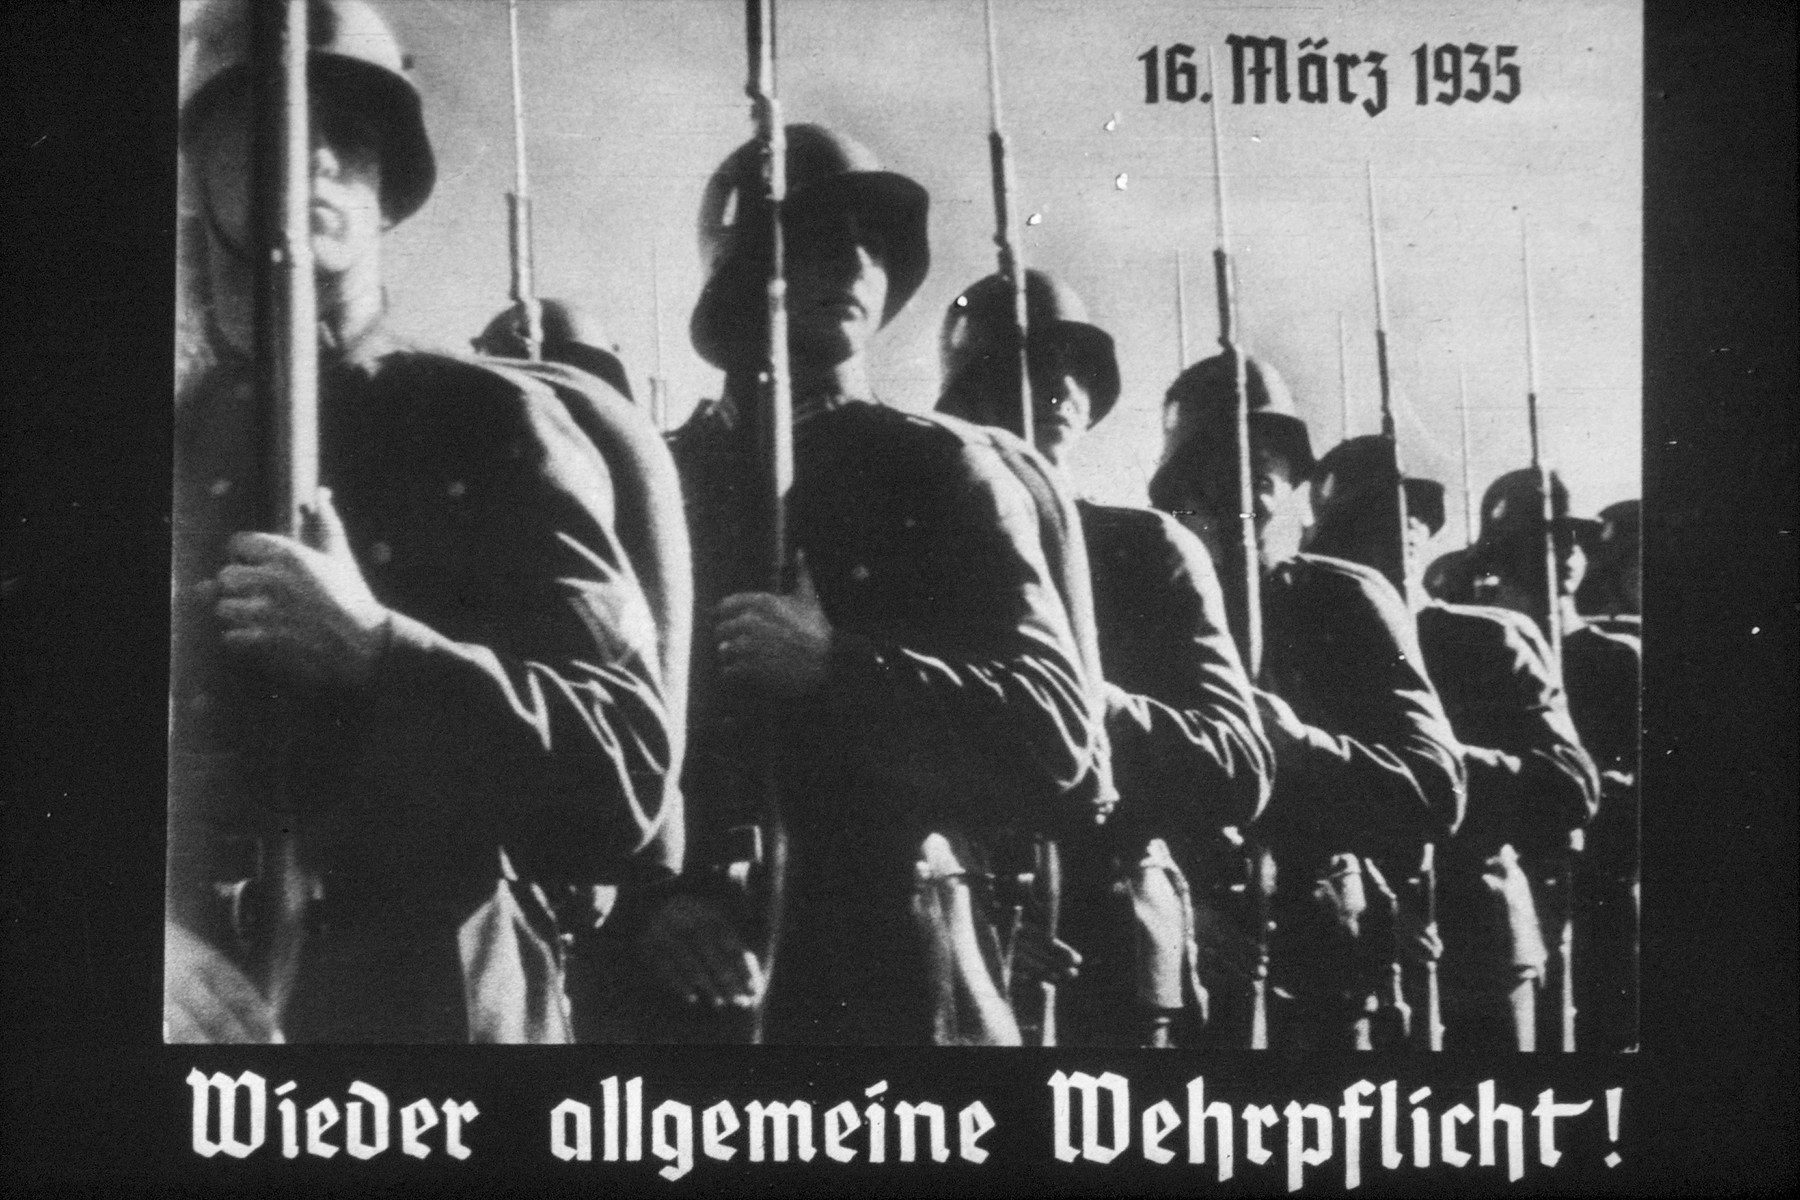 6th slide from a Hitler Youth slideshow about the aftermath of WWI, Versailles, how it was overcome and the rise of Nazism.  16 Marz 1936 Wieder allgemeine Wehrpflicht! // 16 March 1935 general  conscription again!